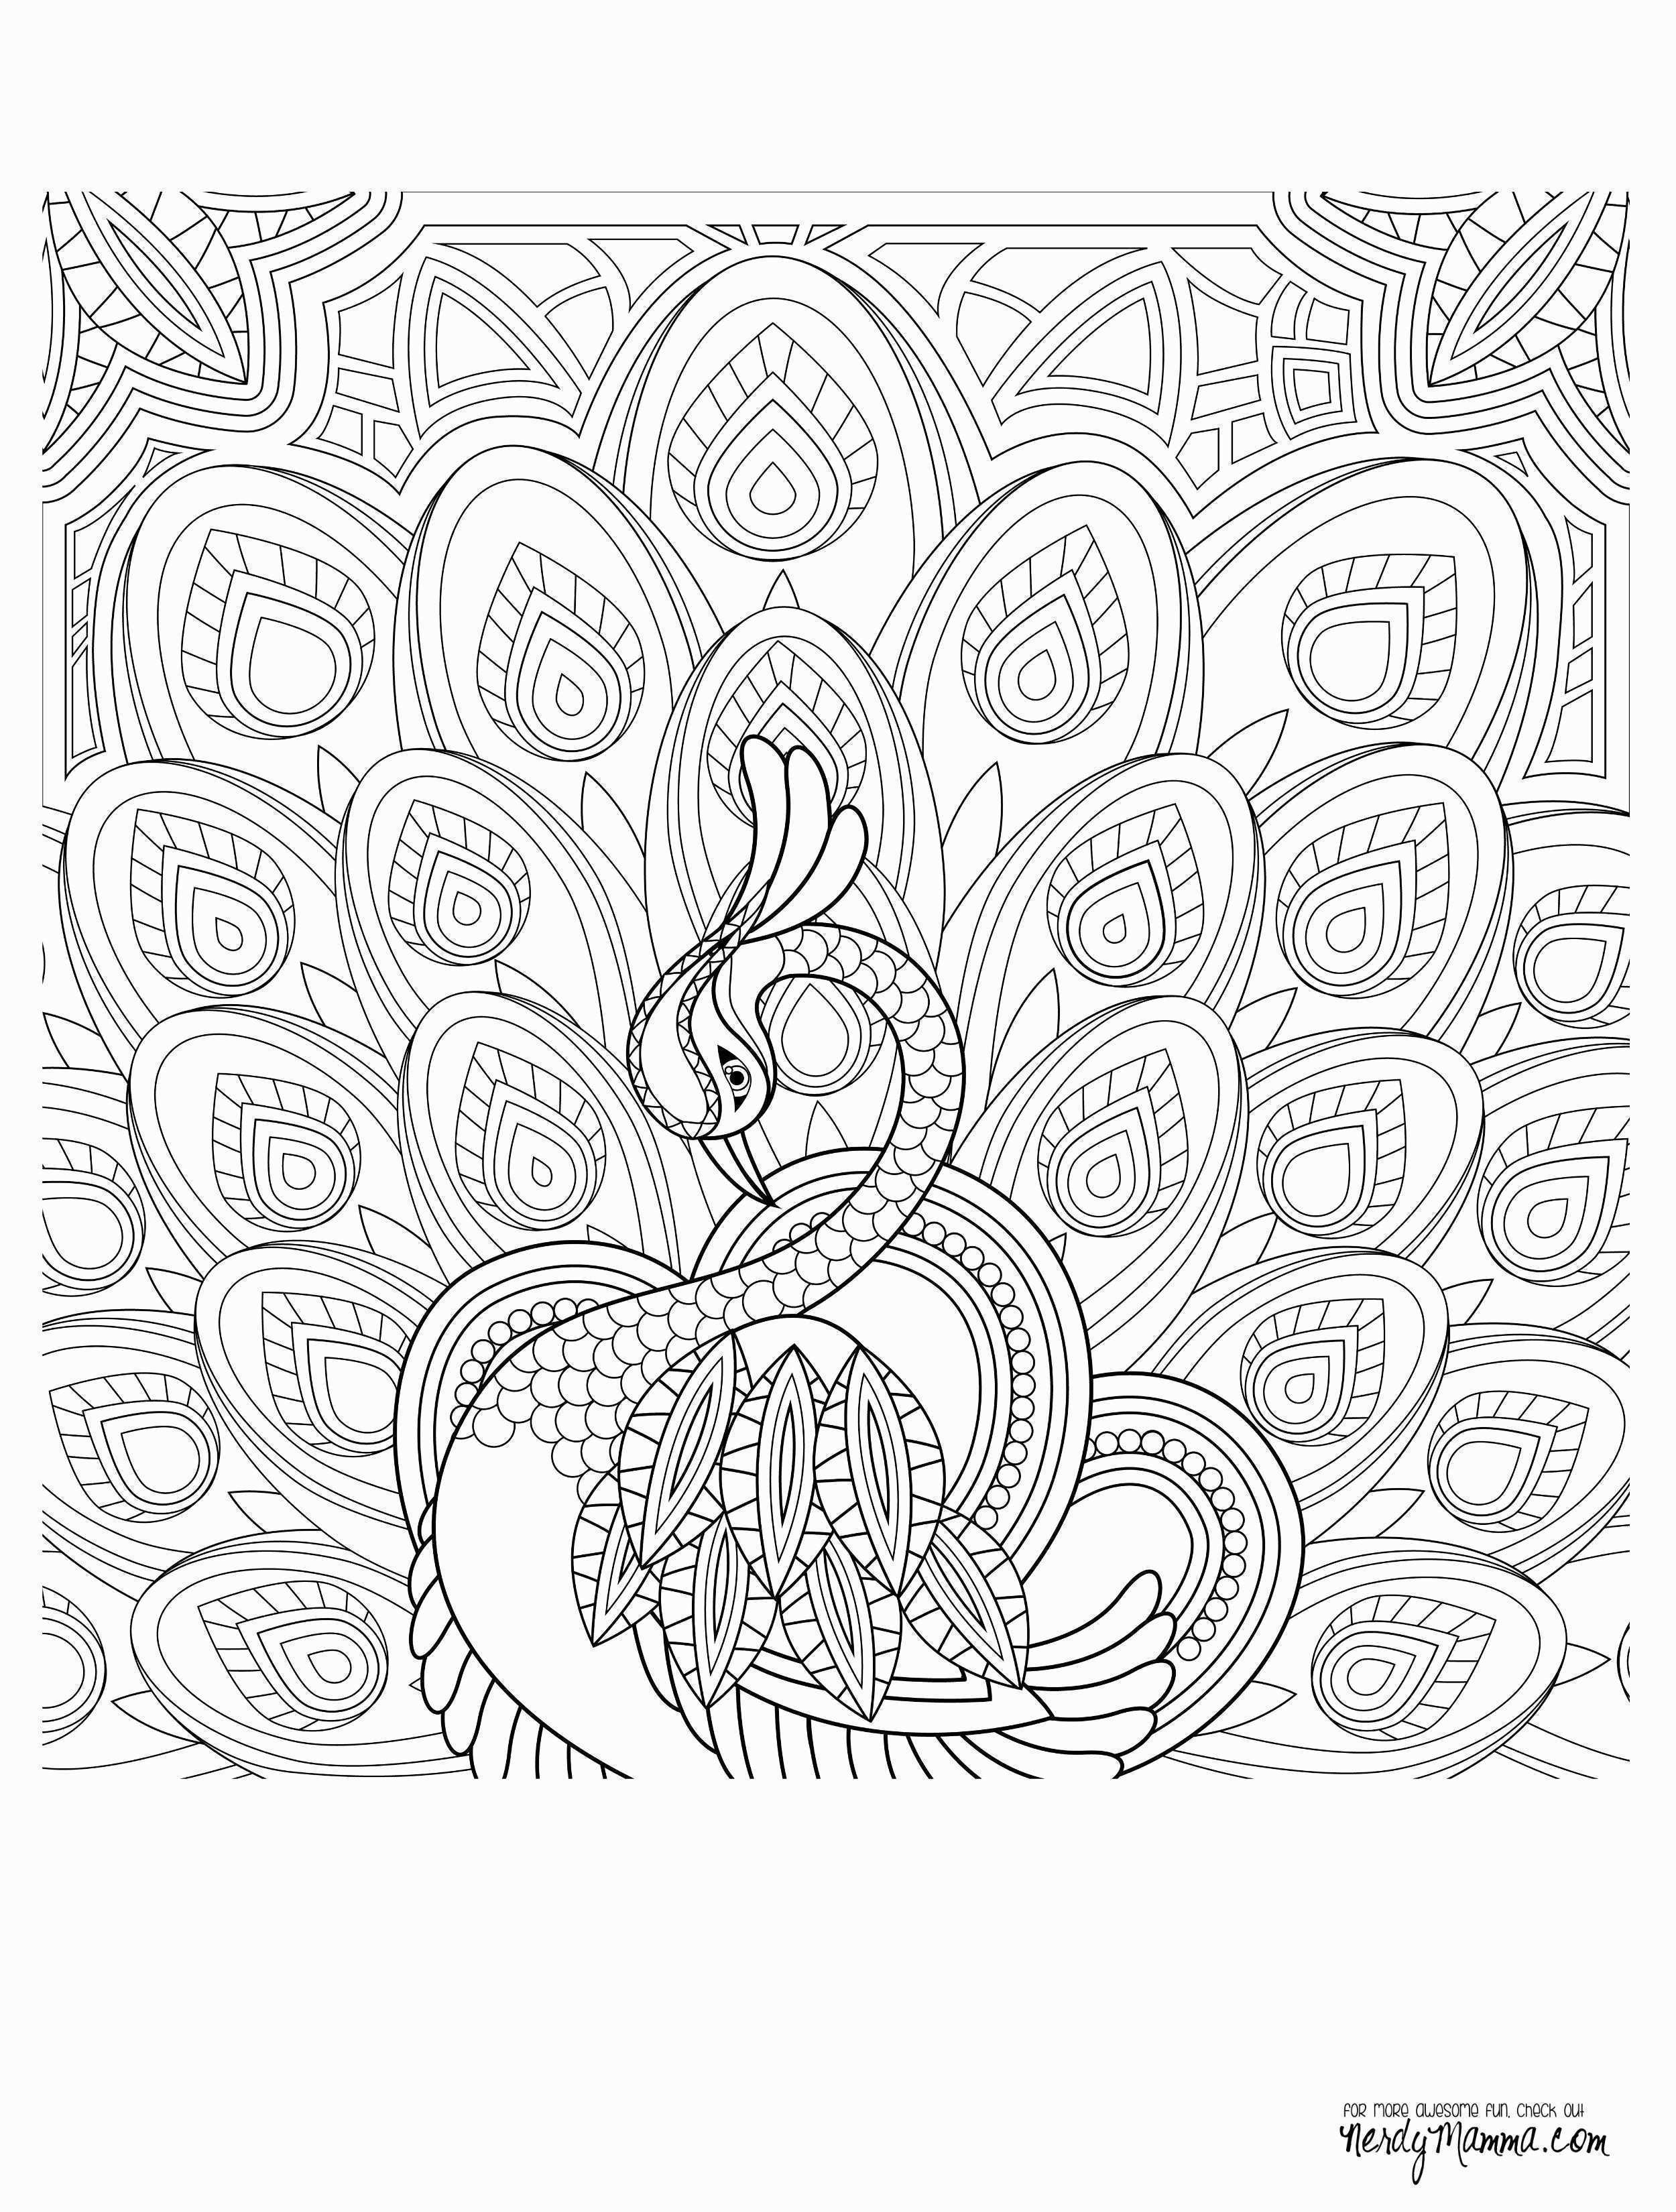 Free Printables Coloring Pages 2 New Fresh S S Media Cache Ak0